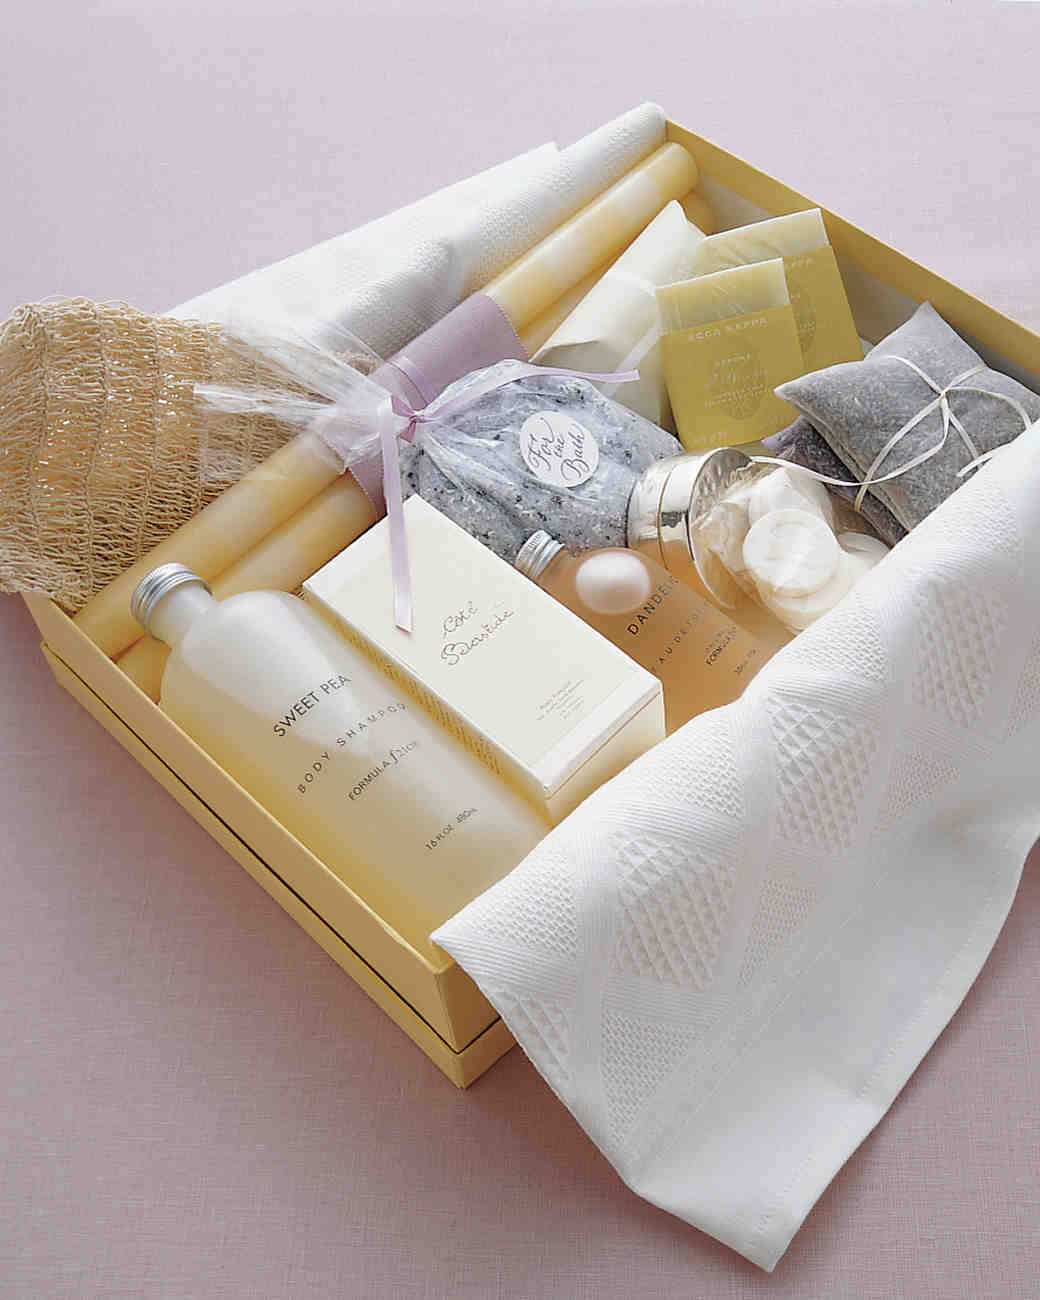 Toiletries such as bubble bath or massage oils are always a bridal shower winner